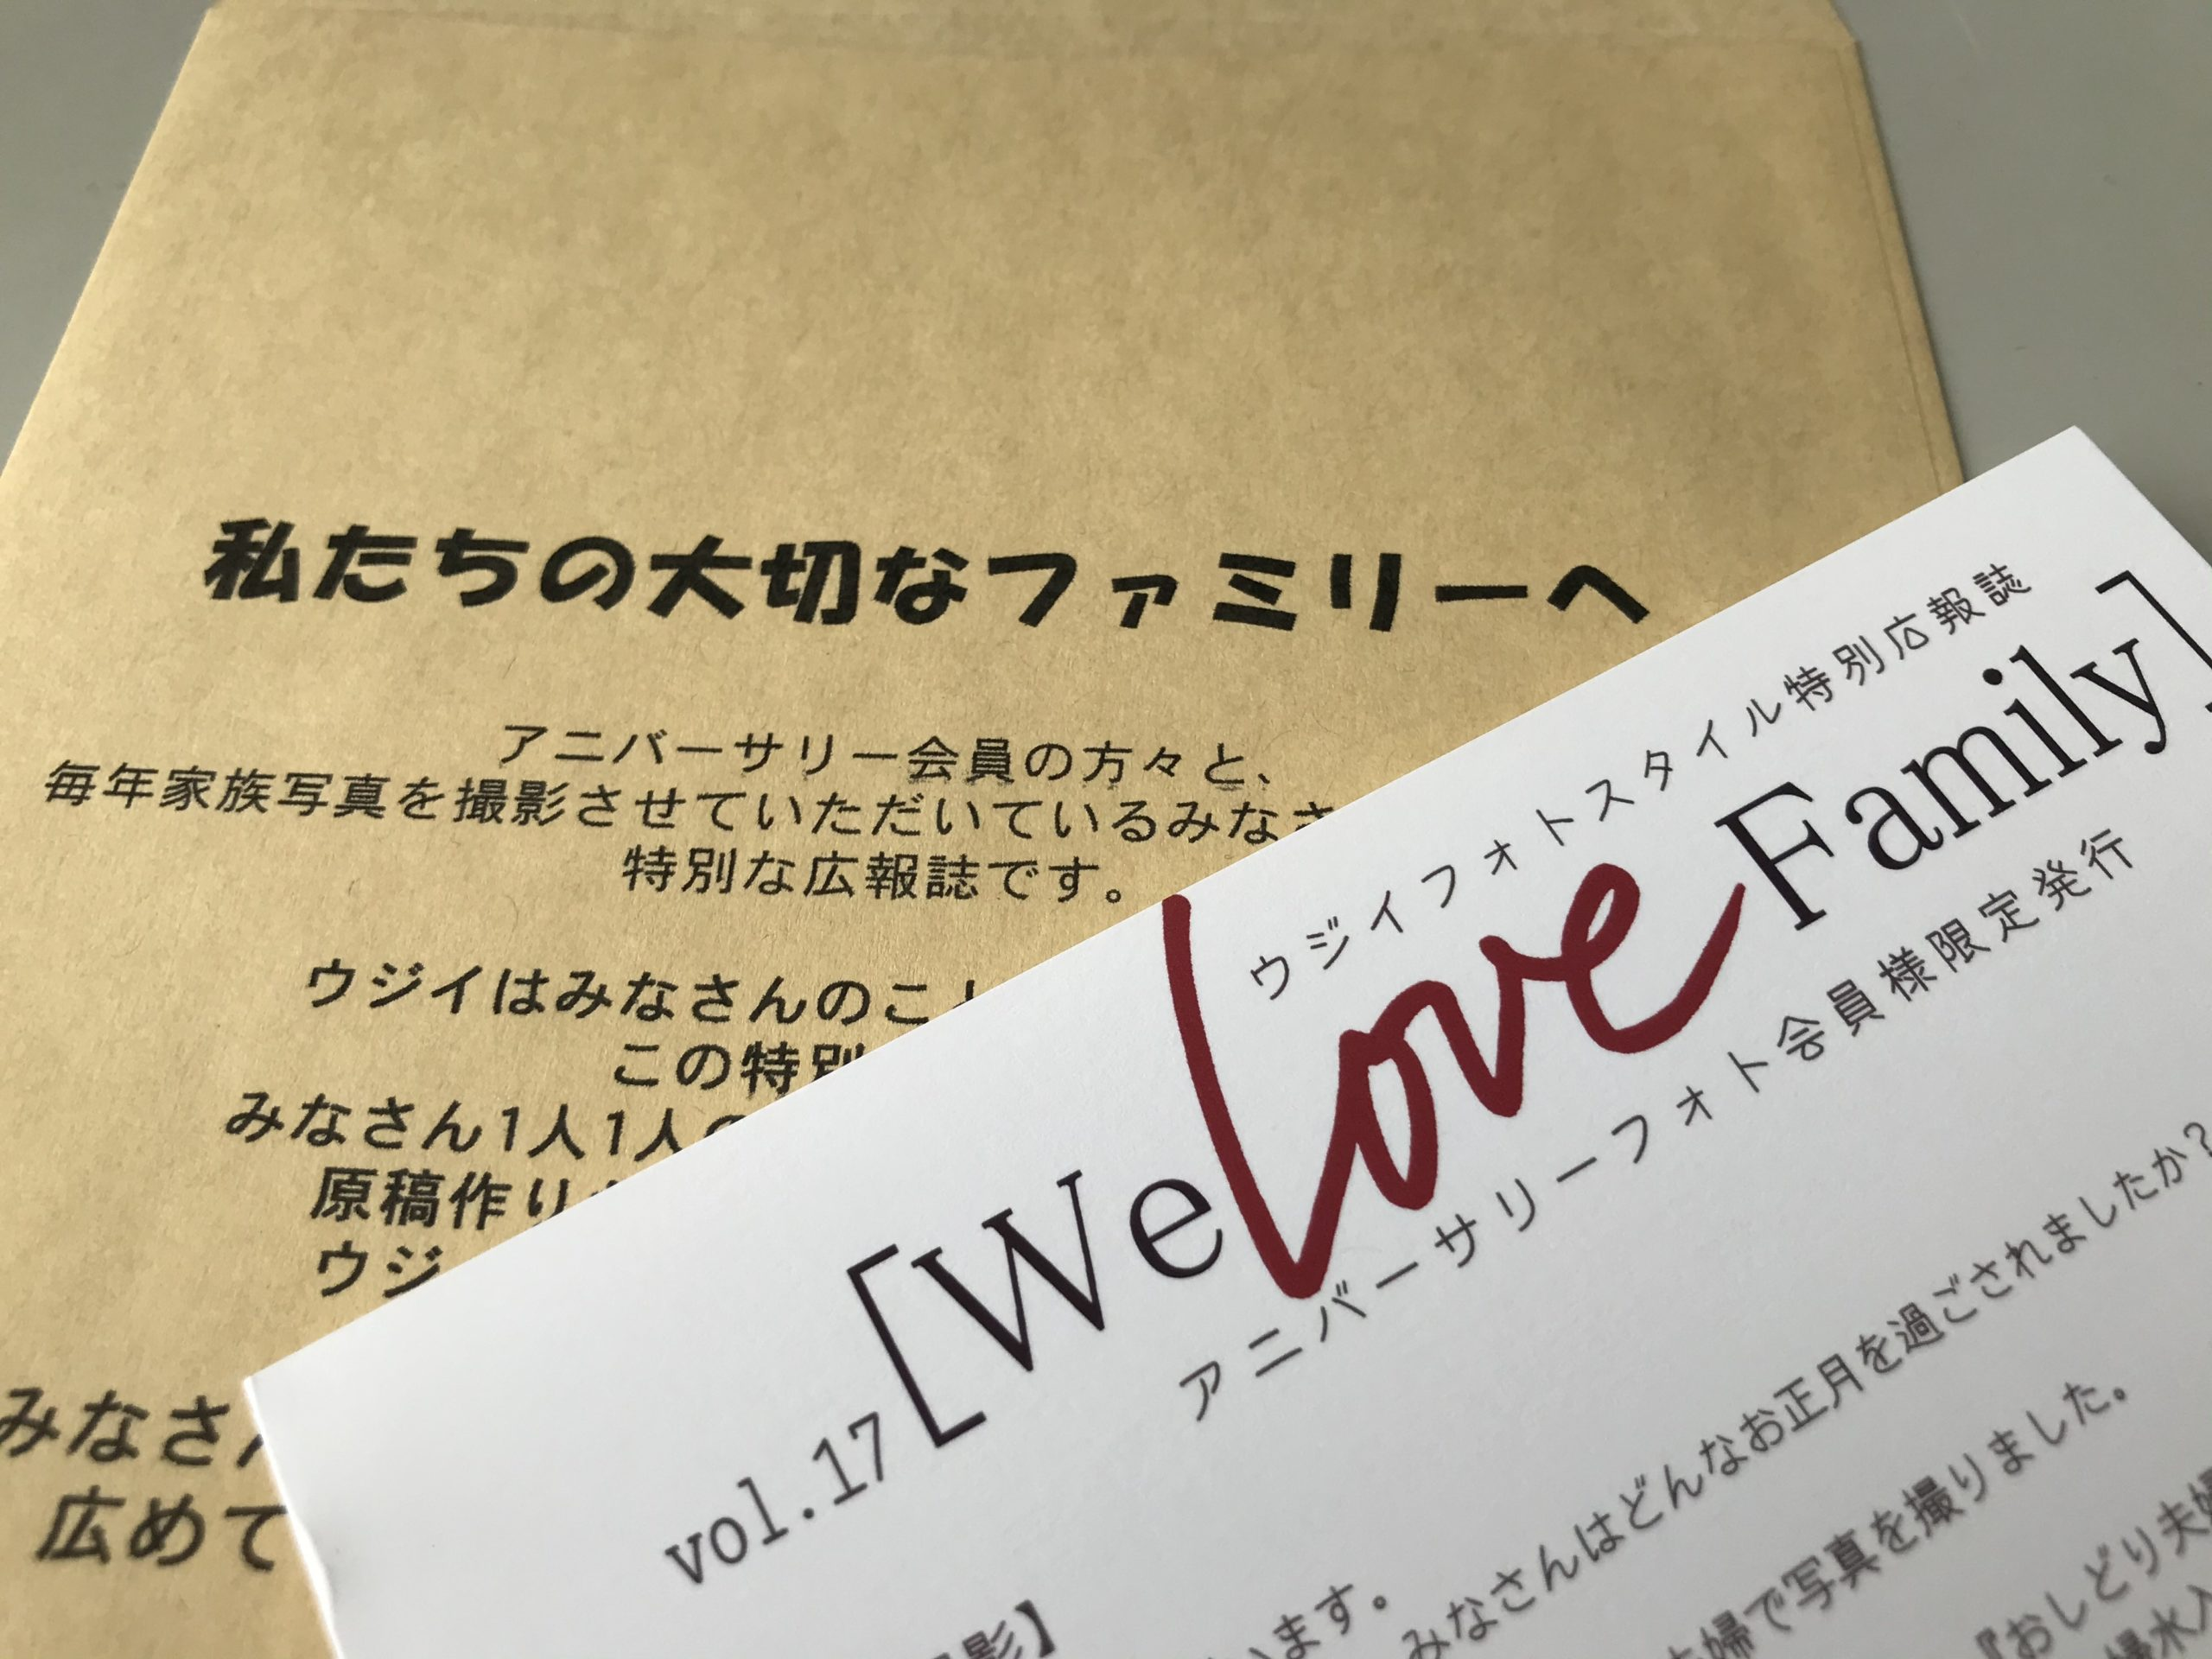 We love Family vol.17